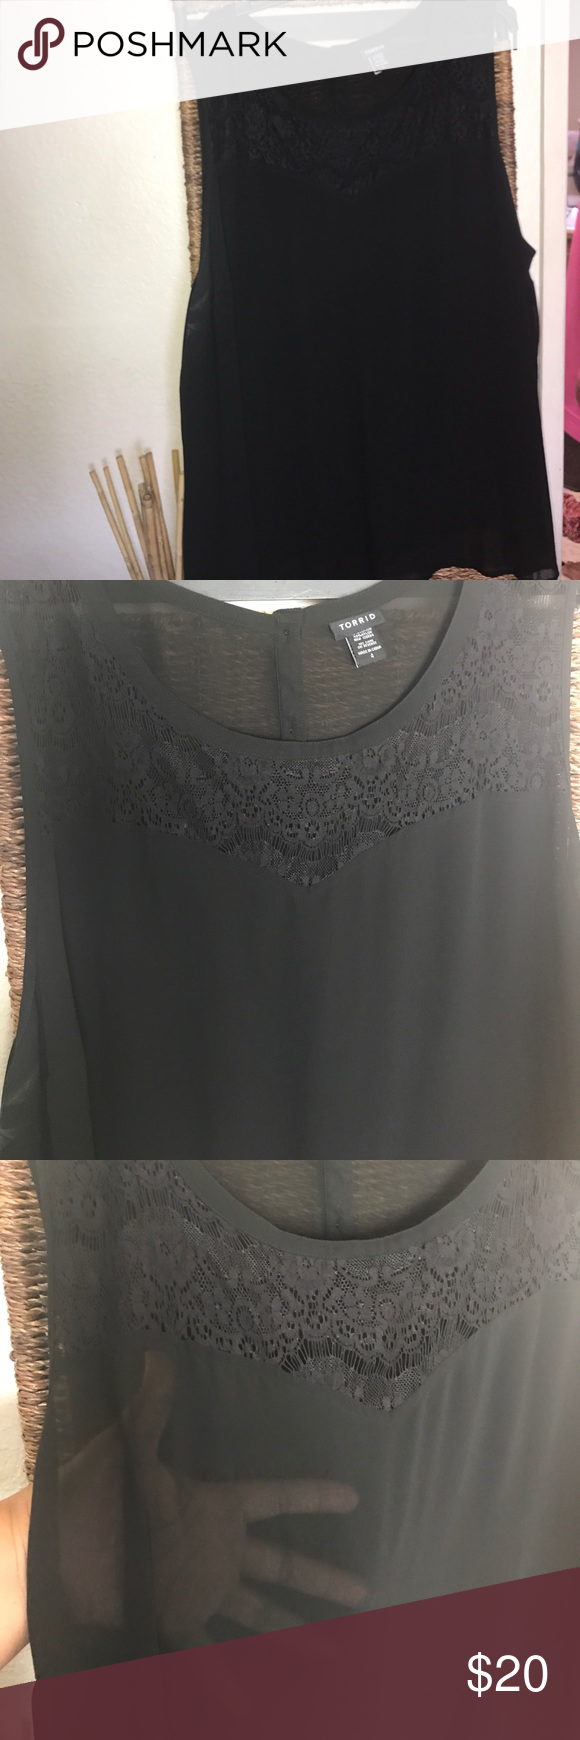 Sheer sleeveless top w/lace accents Sheer sleeveless top w/lace accents torrid Tops Tunics